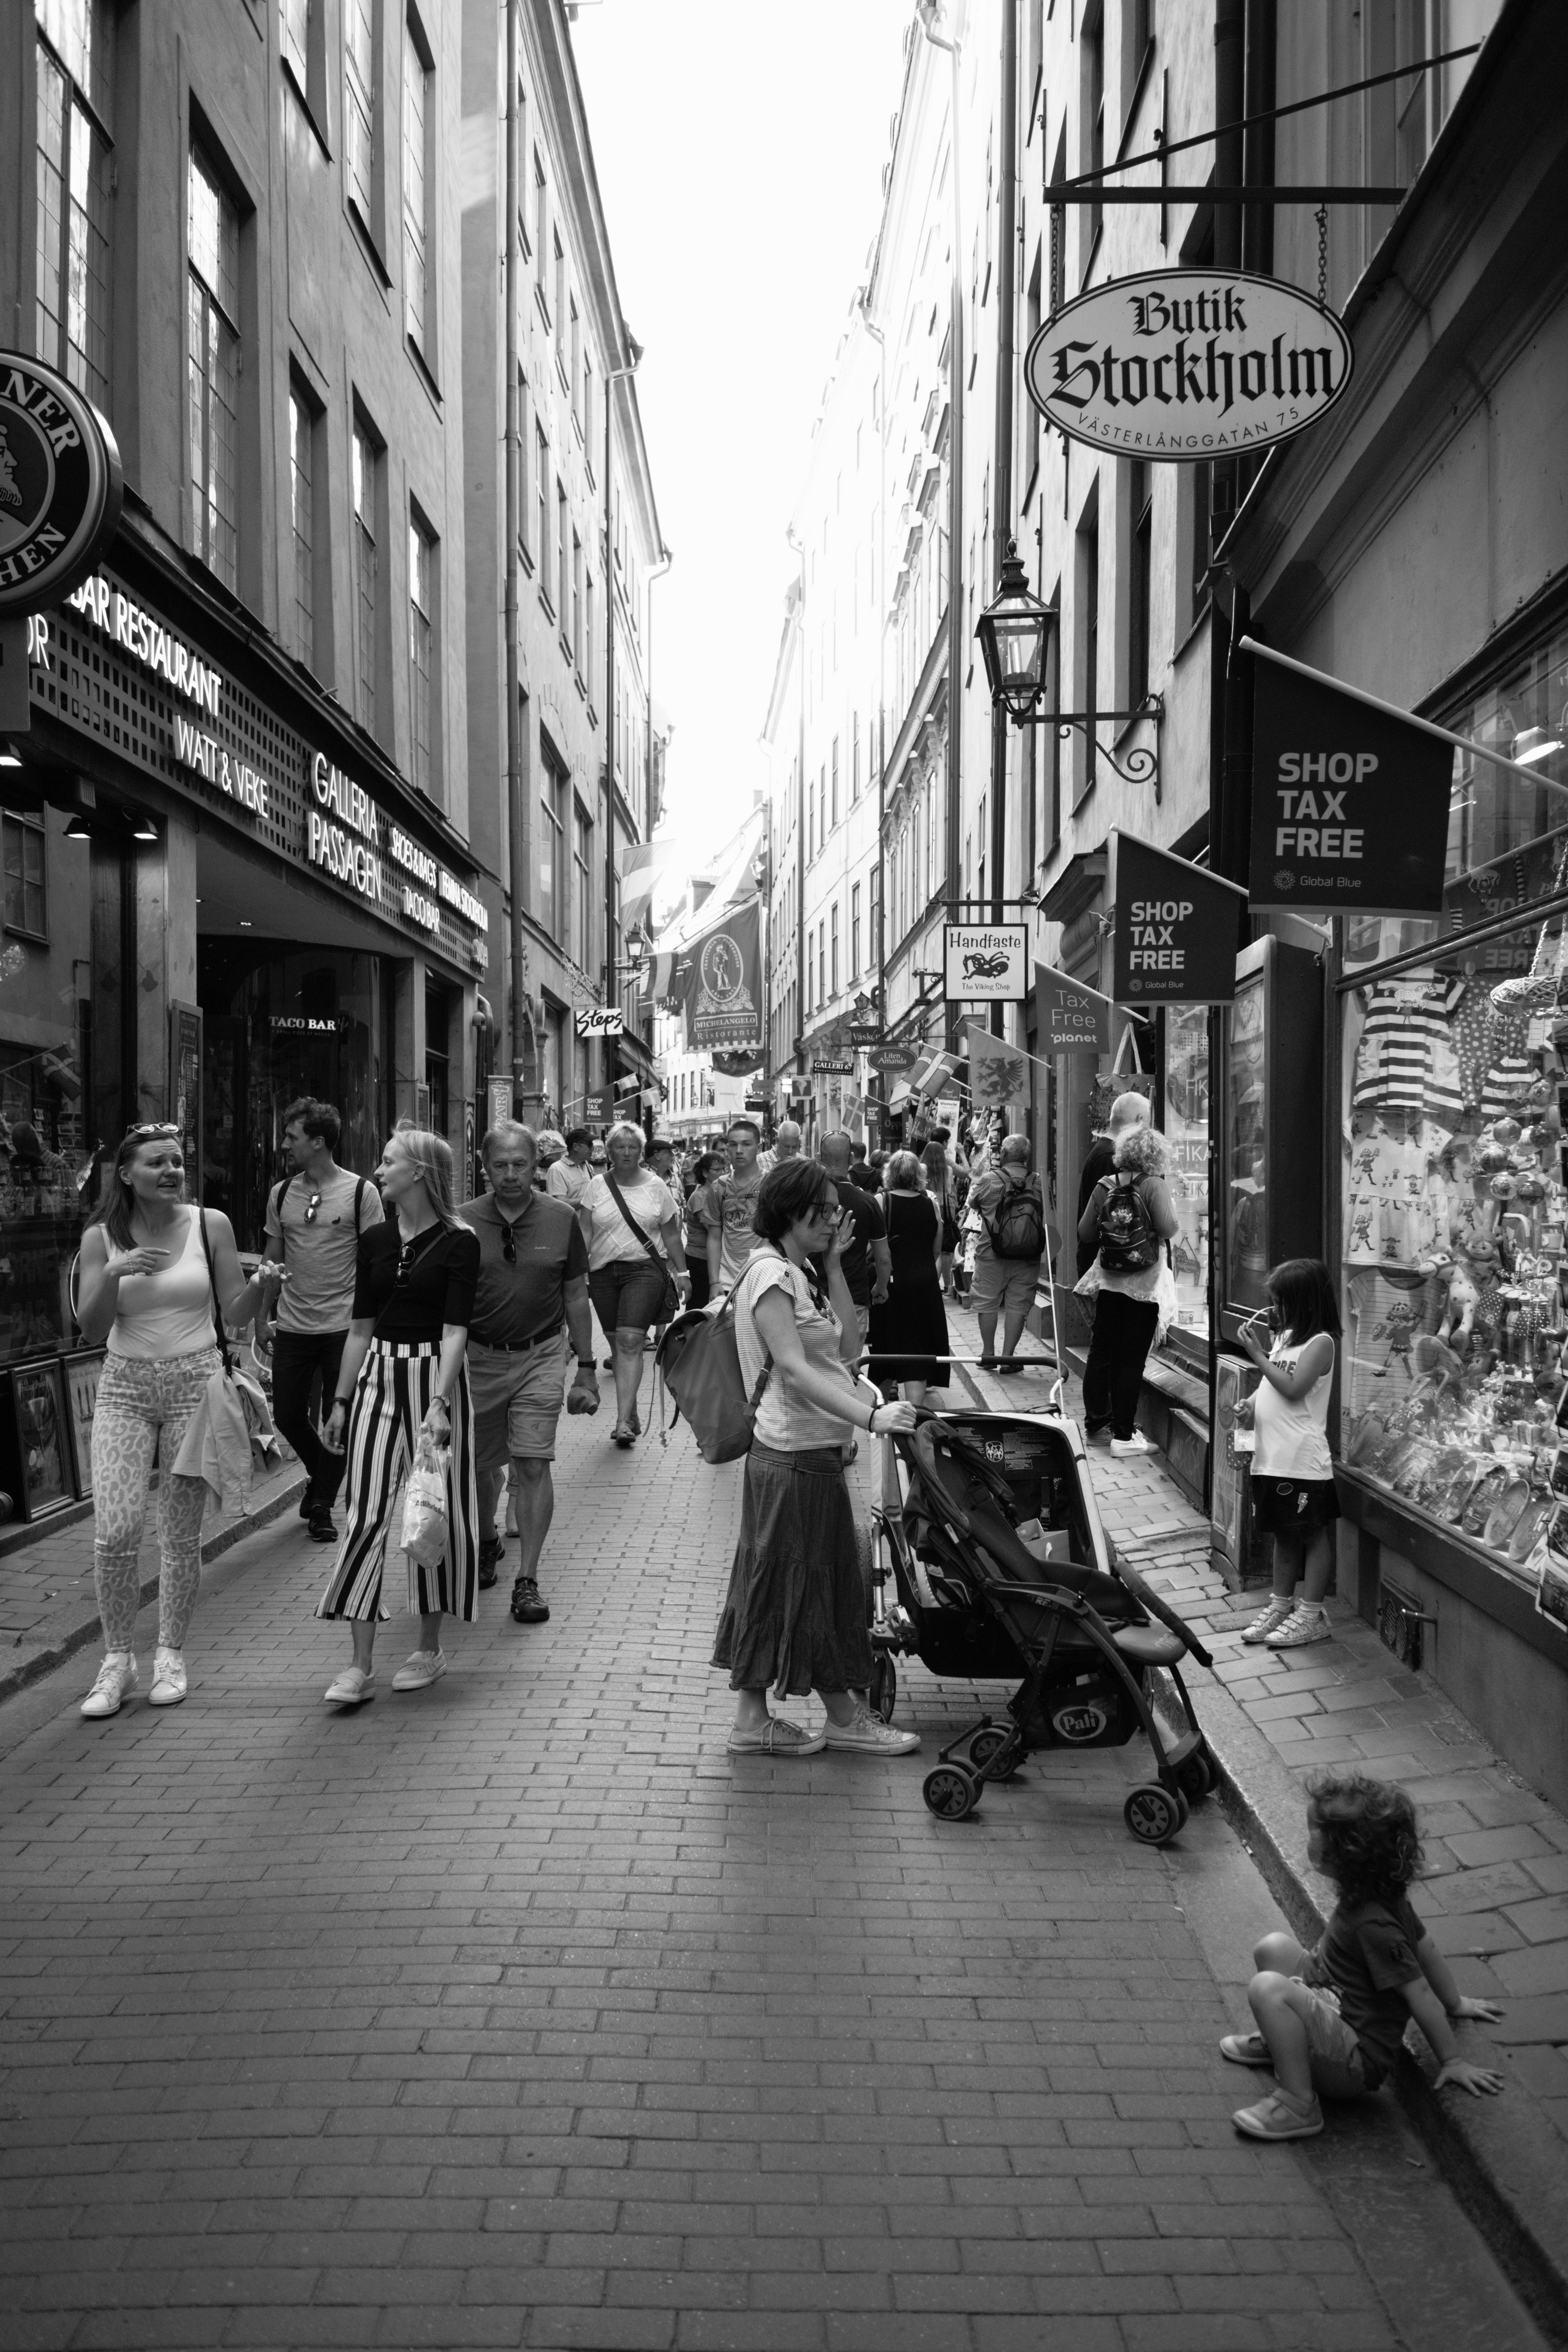 Streetlife at Old Town (, ) with Leica M Monochrom (Leica Summaron-M 28mm f/5.6) by Magnus Andersson (photography.anderssoneklund.se) at 2019-06-16 17:45:23